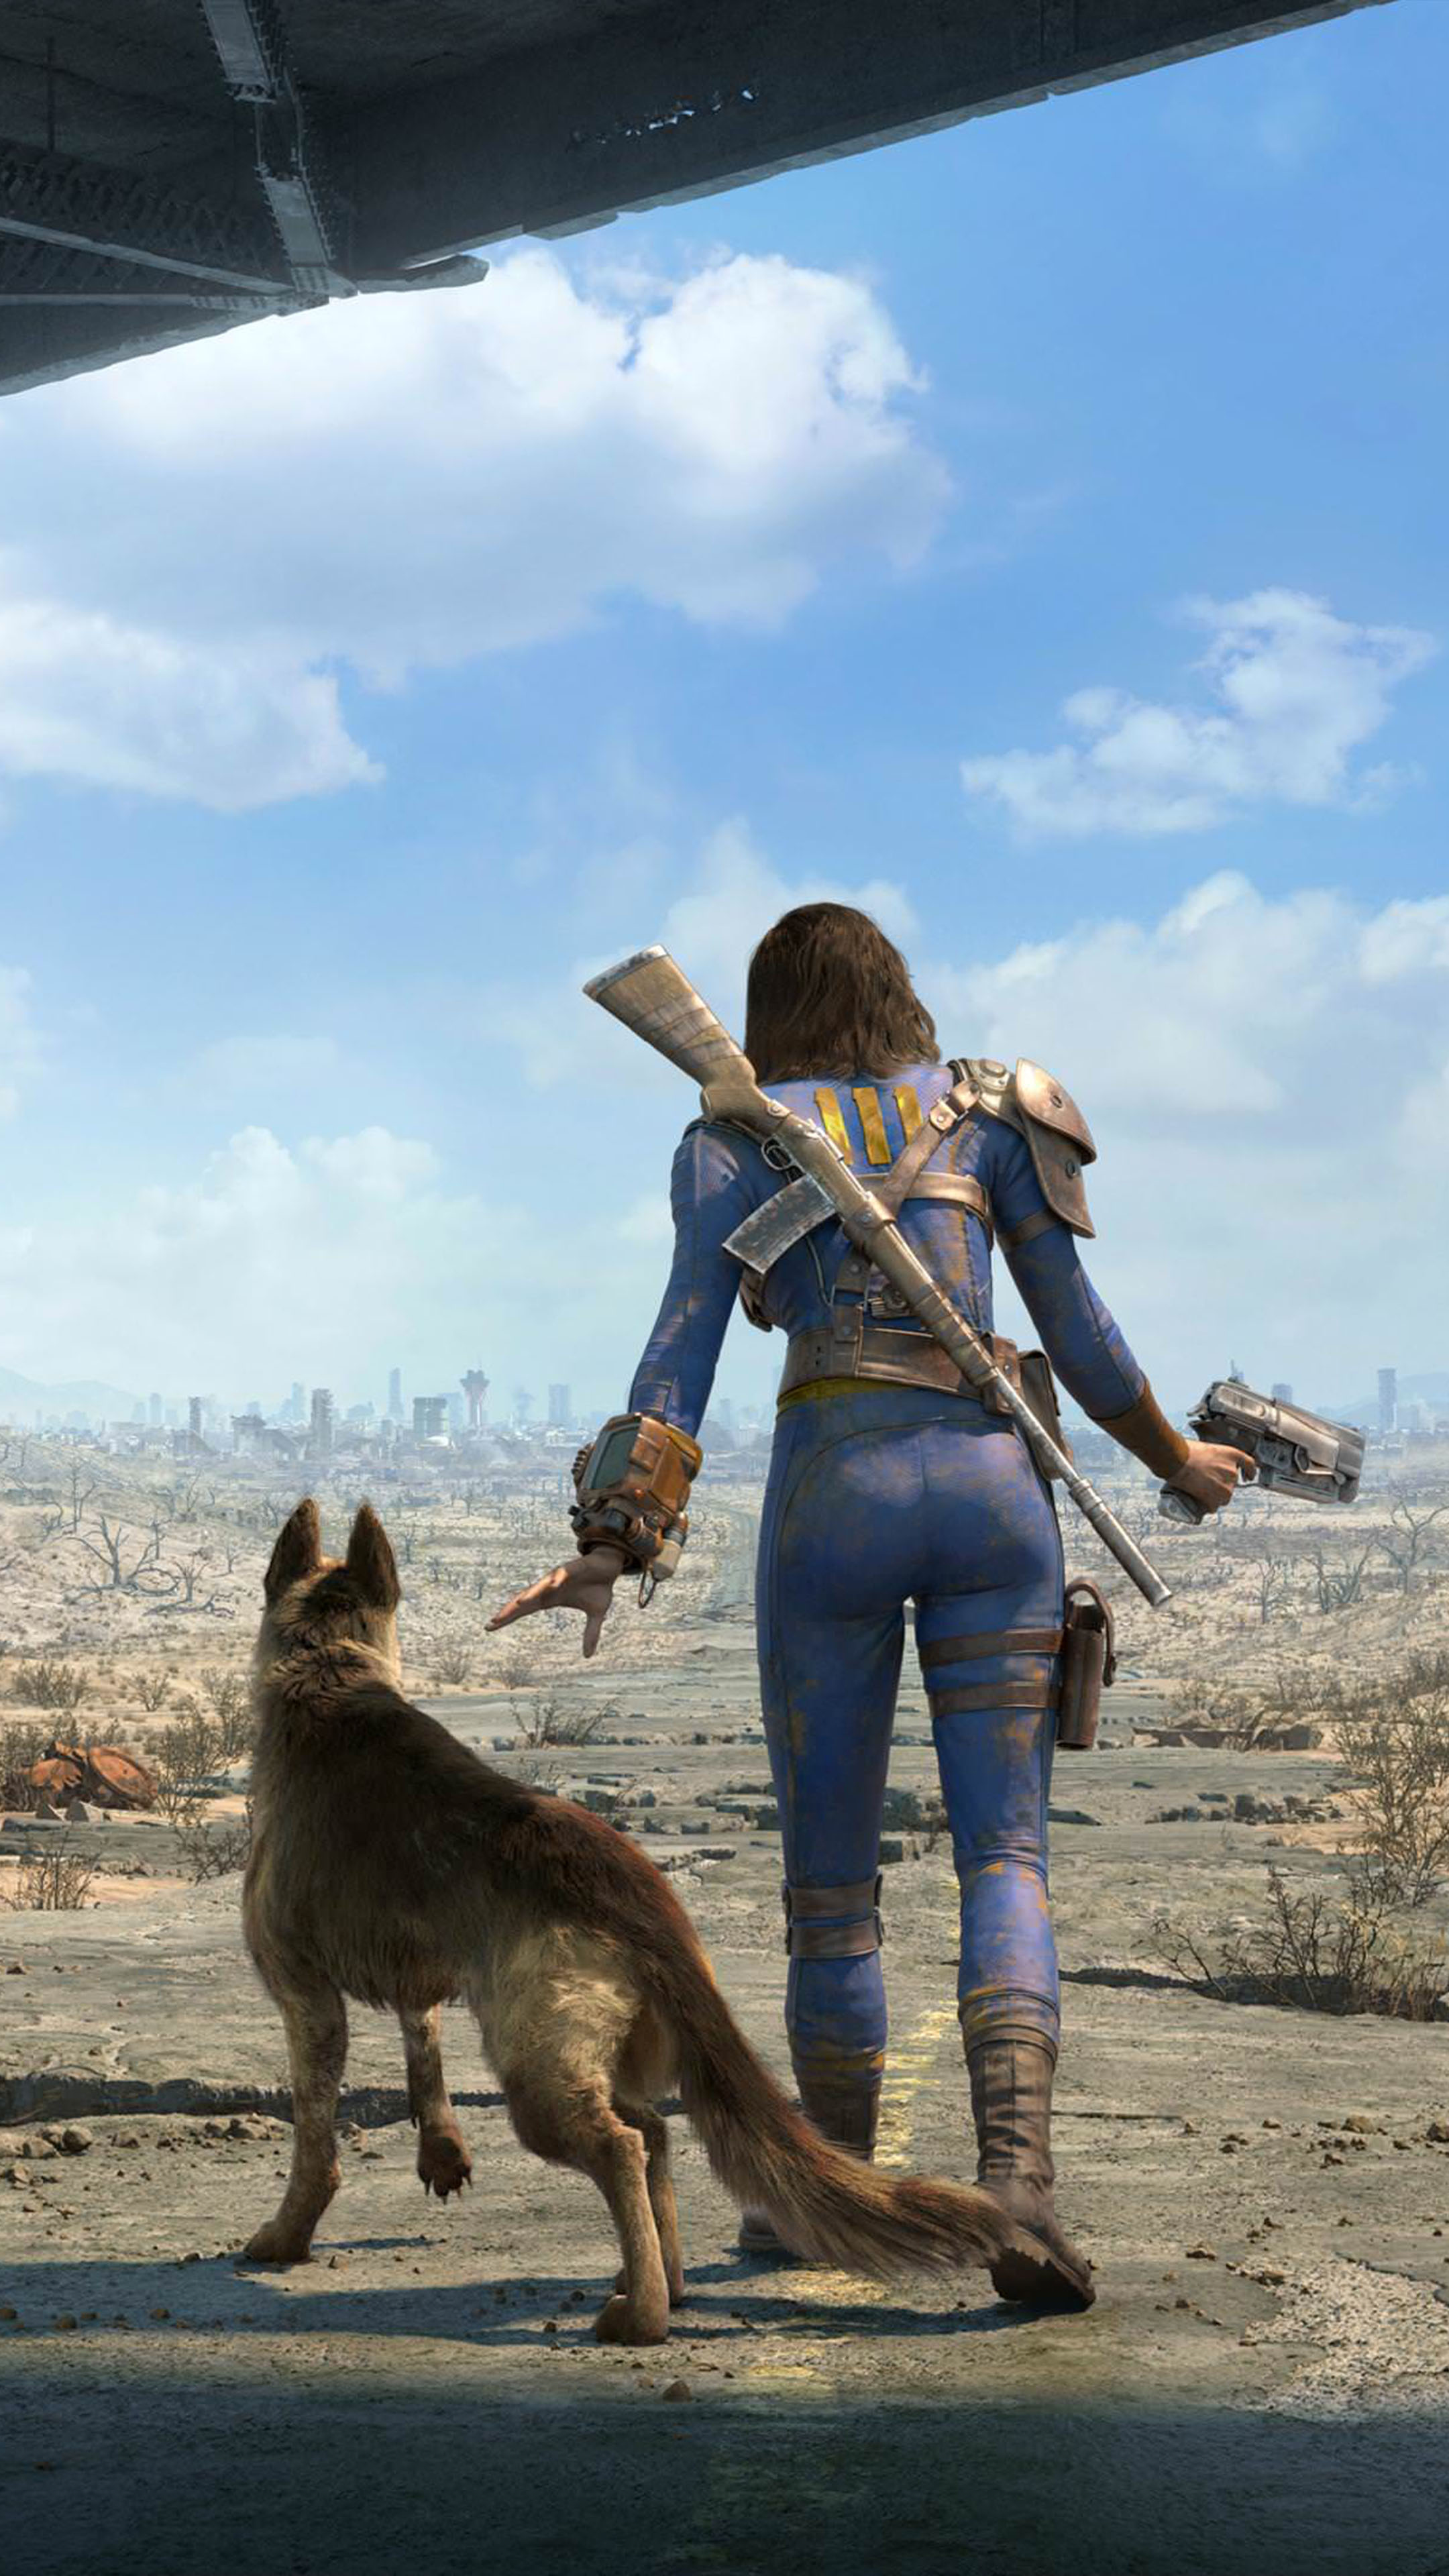 Fallout 4 2019 4k Ultra Hd Mobile Wallpaper